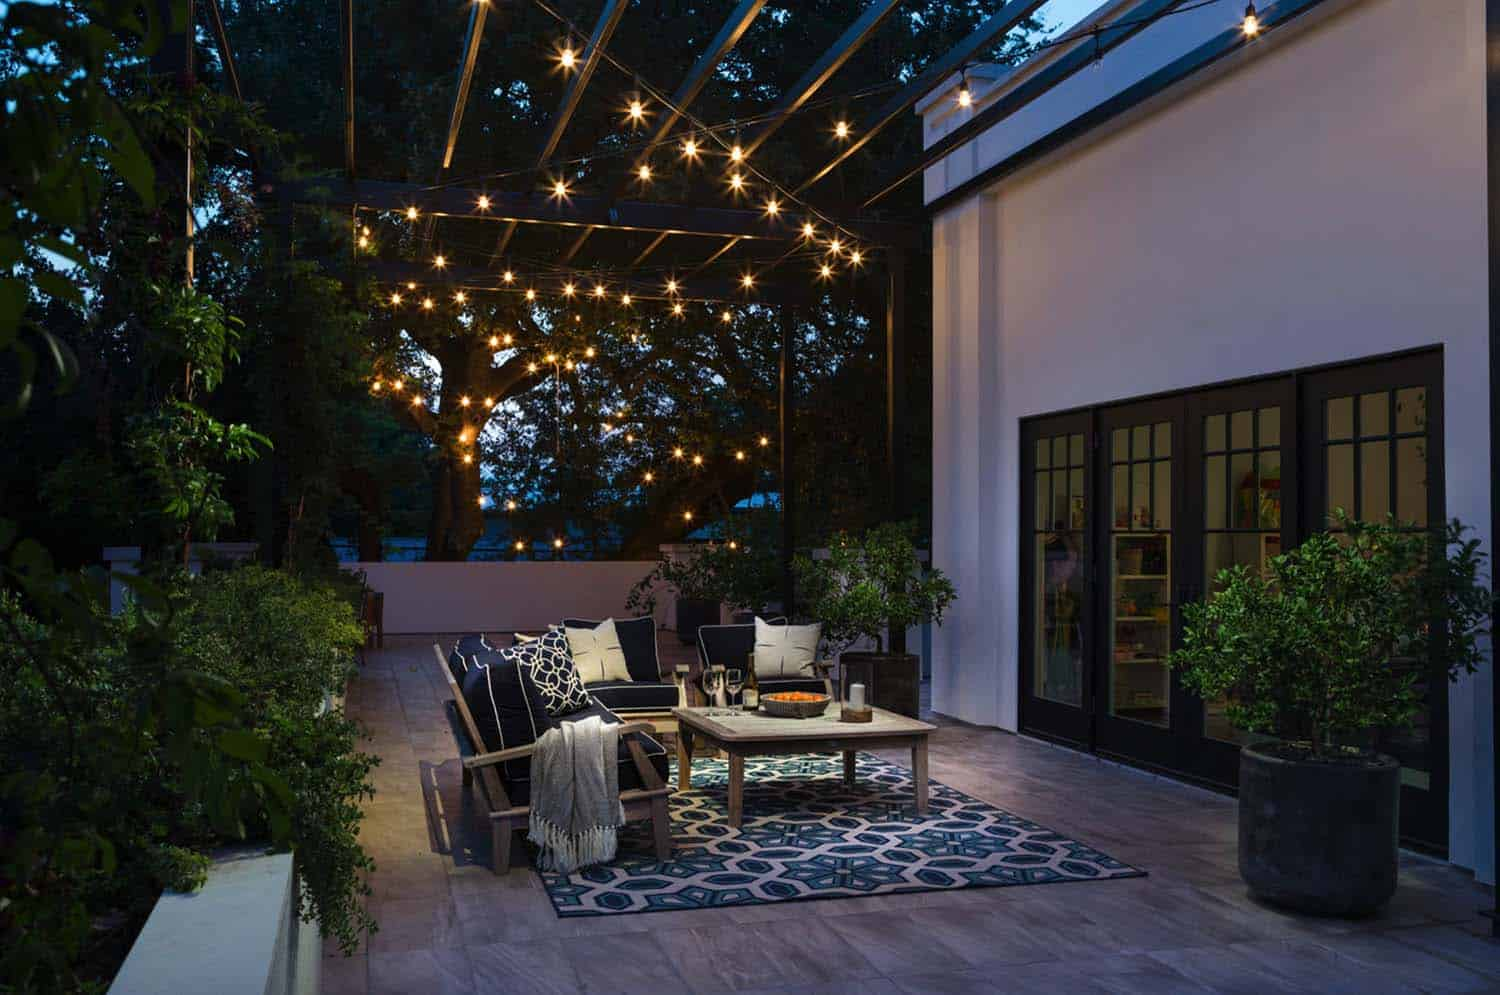 Inspiring String Light Ideas For Outdoors-02-1 Kindesign